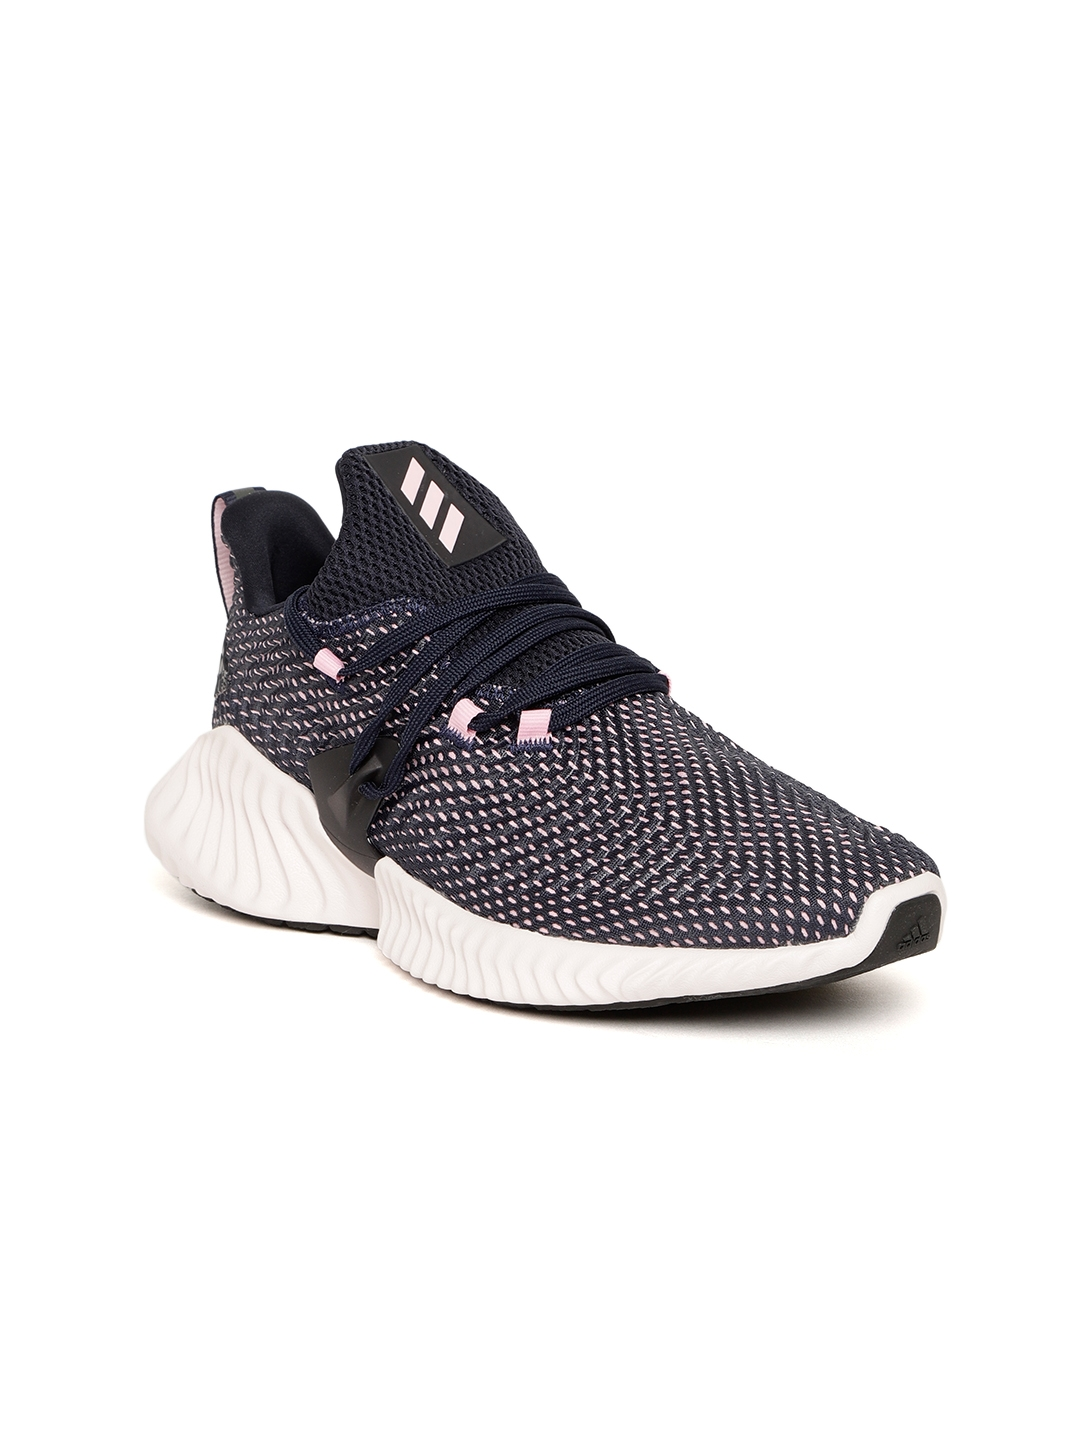 50f1c433f63 Buy ADIDAS Women Navy   Pink Alphabounce Instinct Running Shoes ...